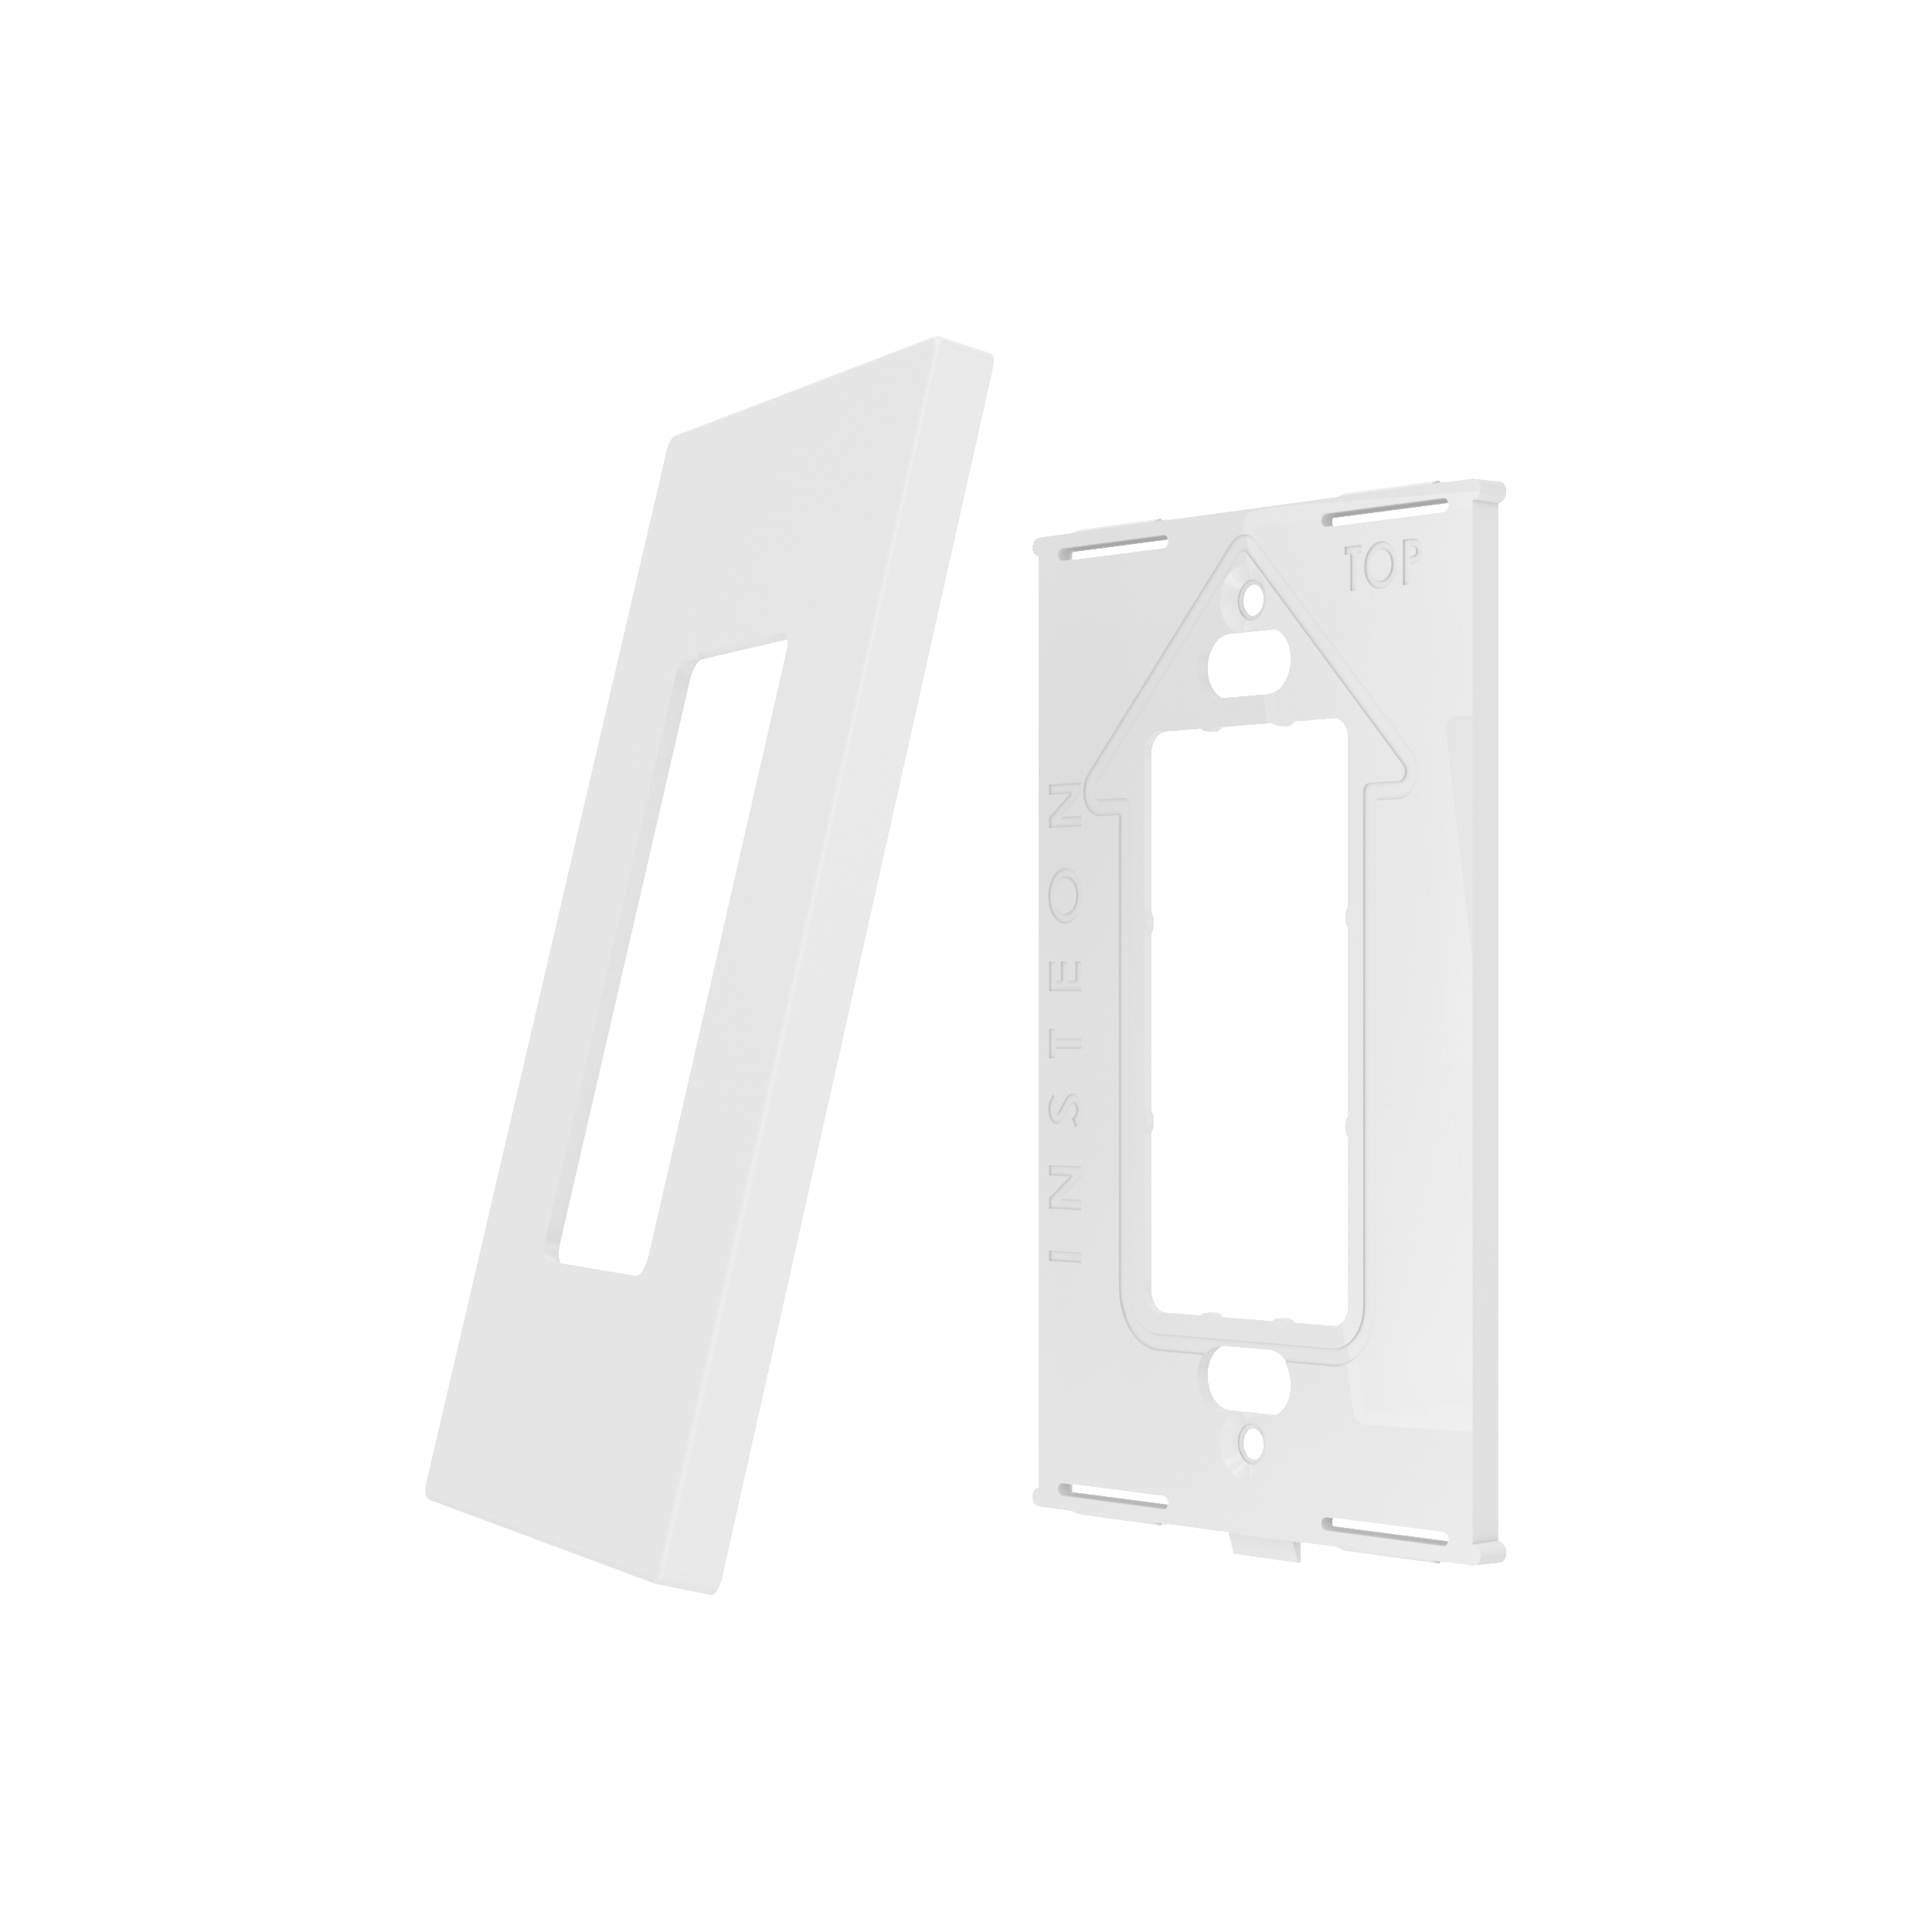 Wall Plate (1-Gang) 03.png